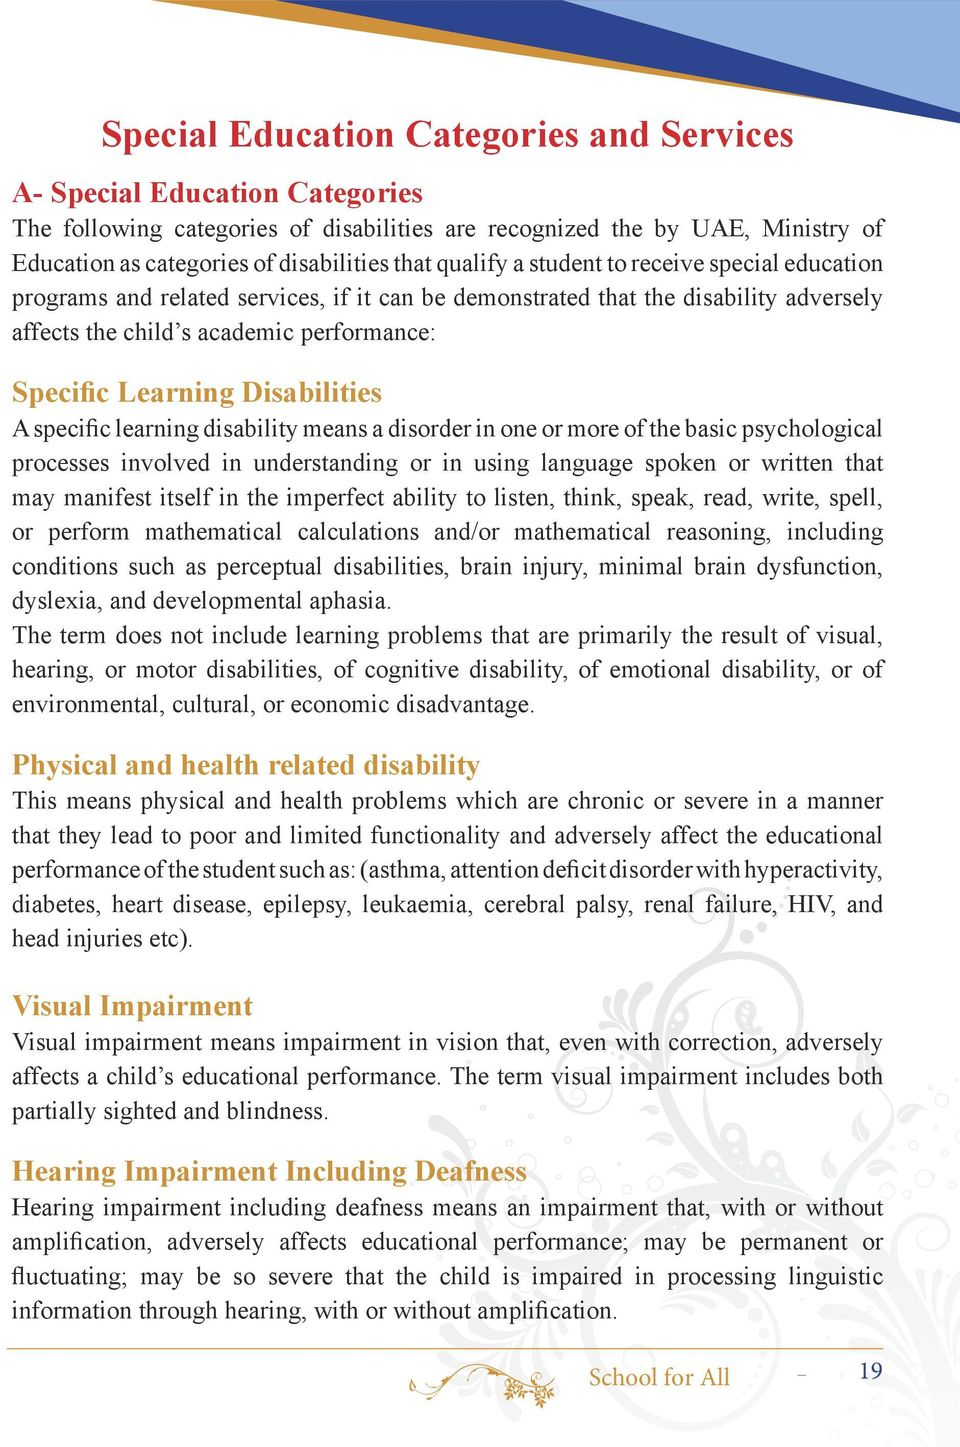 Disabilities A specific learning disability means a disorder in one or more of the basic psychological processes involved in understanding or in using language spoken or written that may manifest